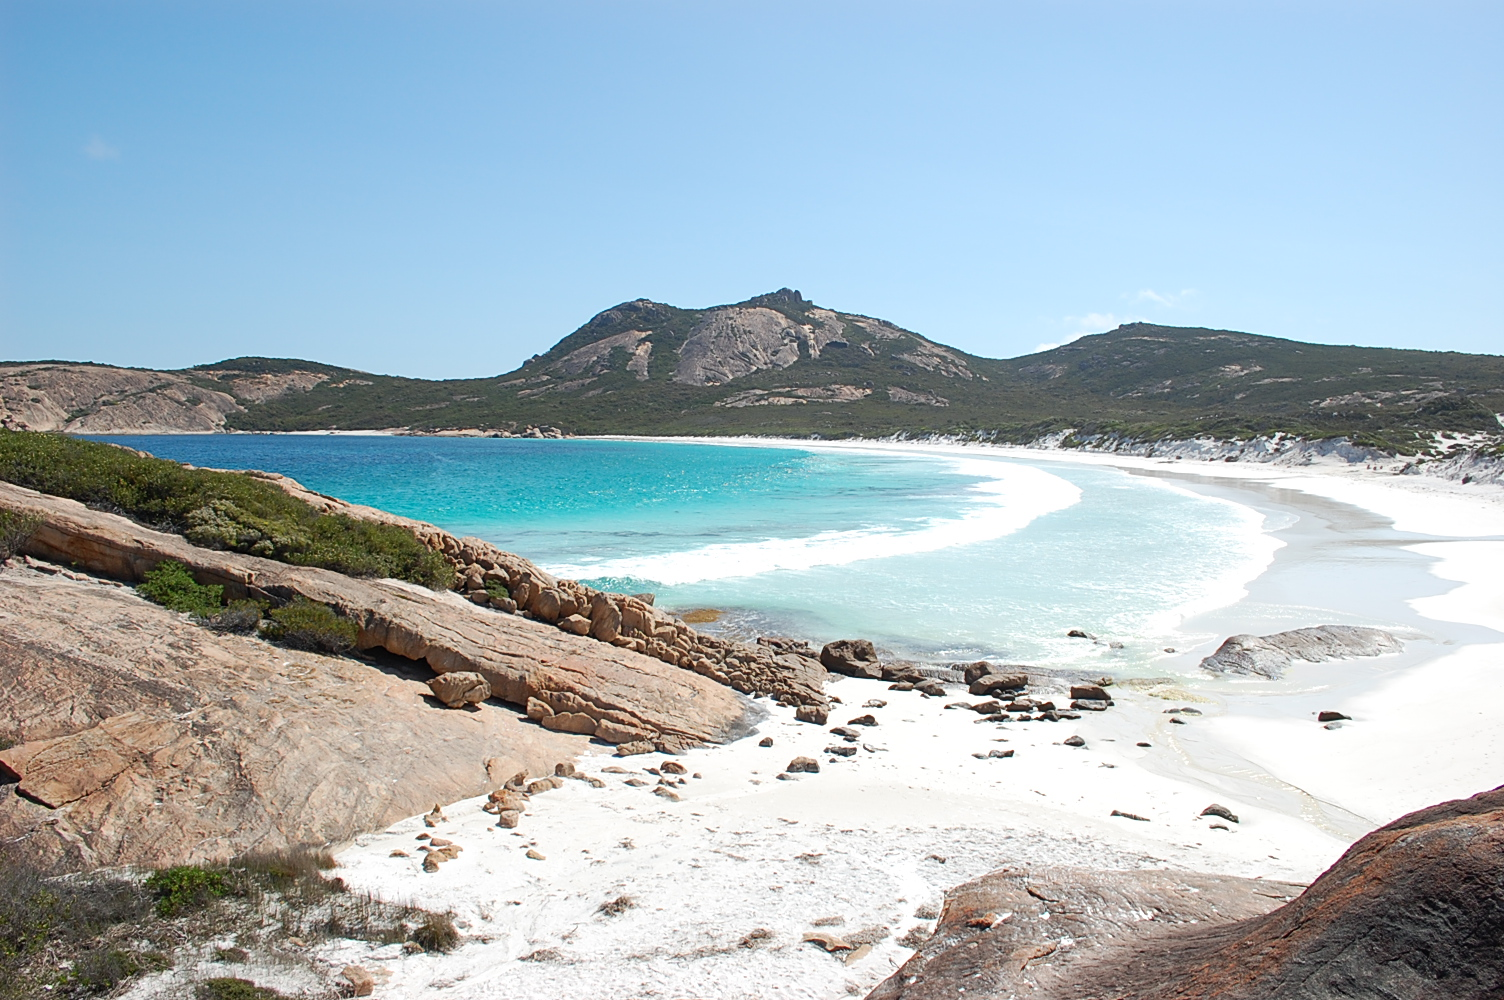 Cape Legrand National Park